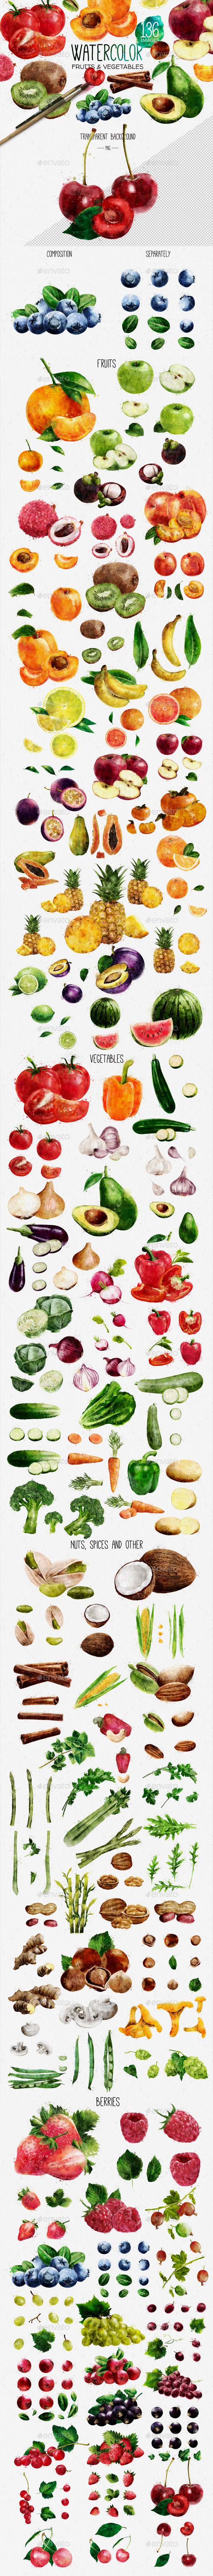 Watercolor Fruits And Vegetables - Objects Illustrations